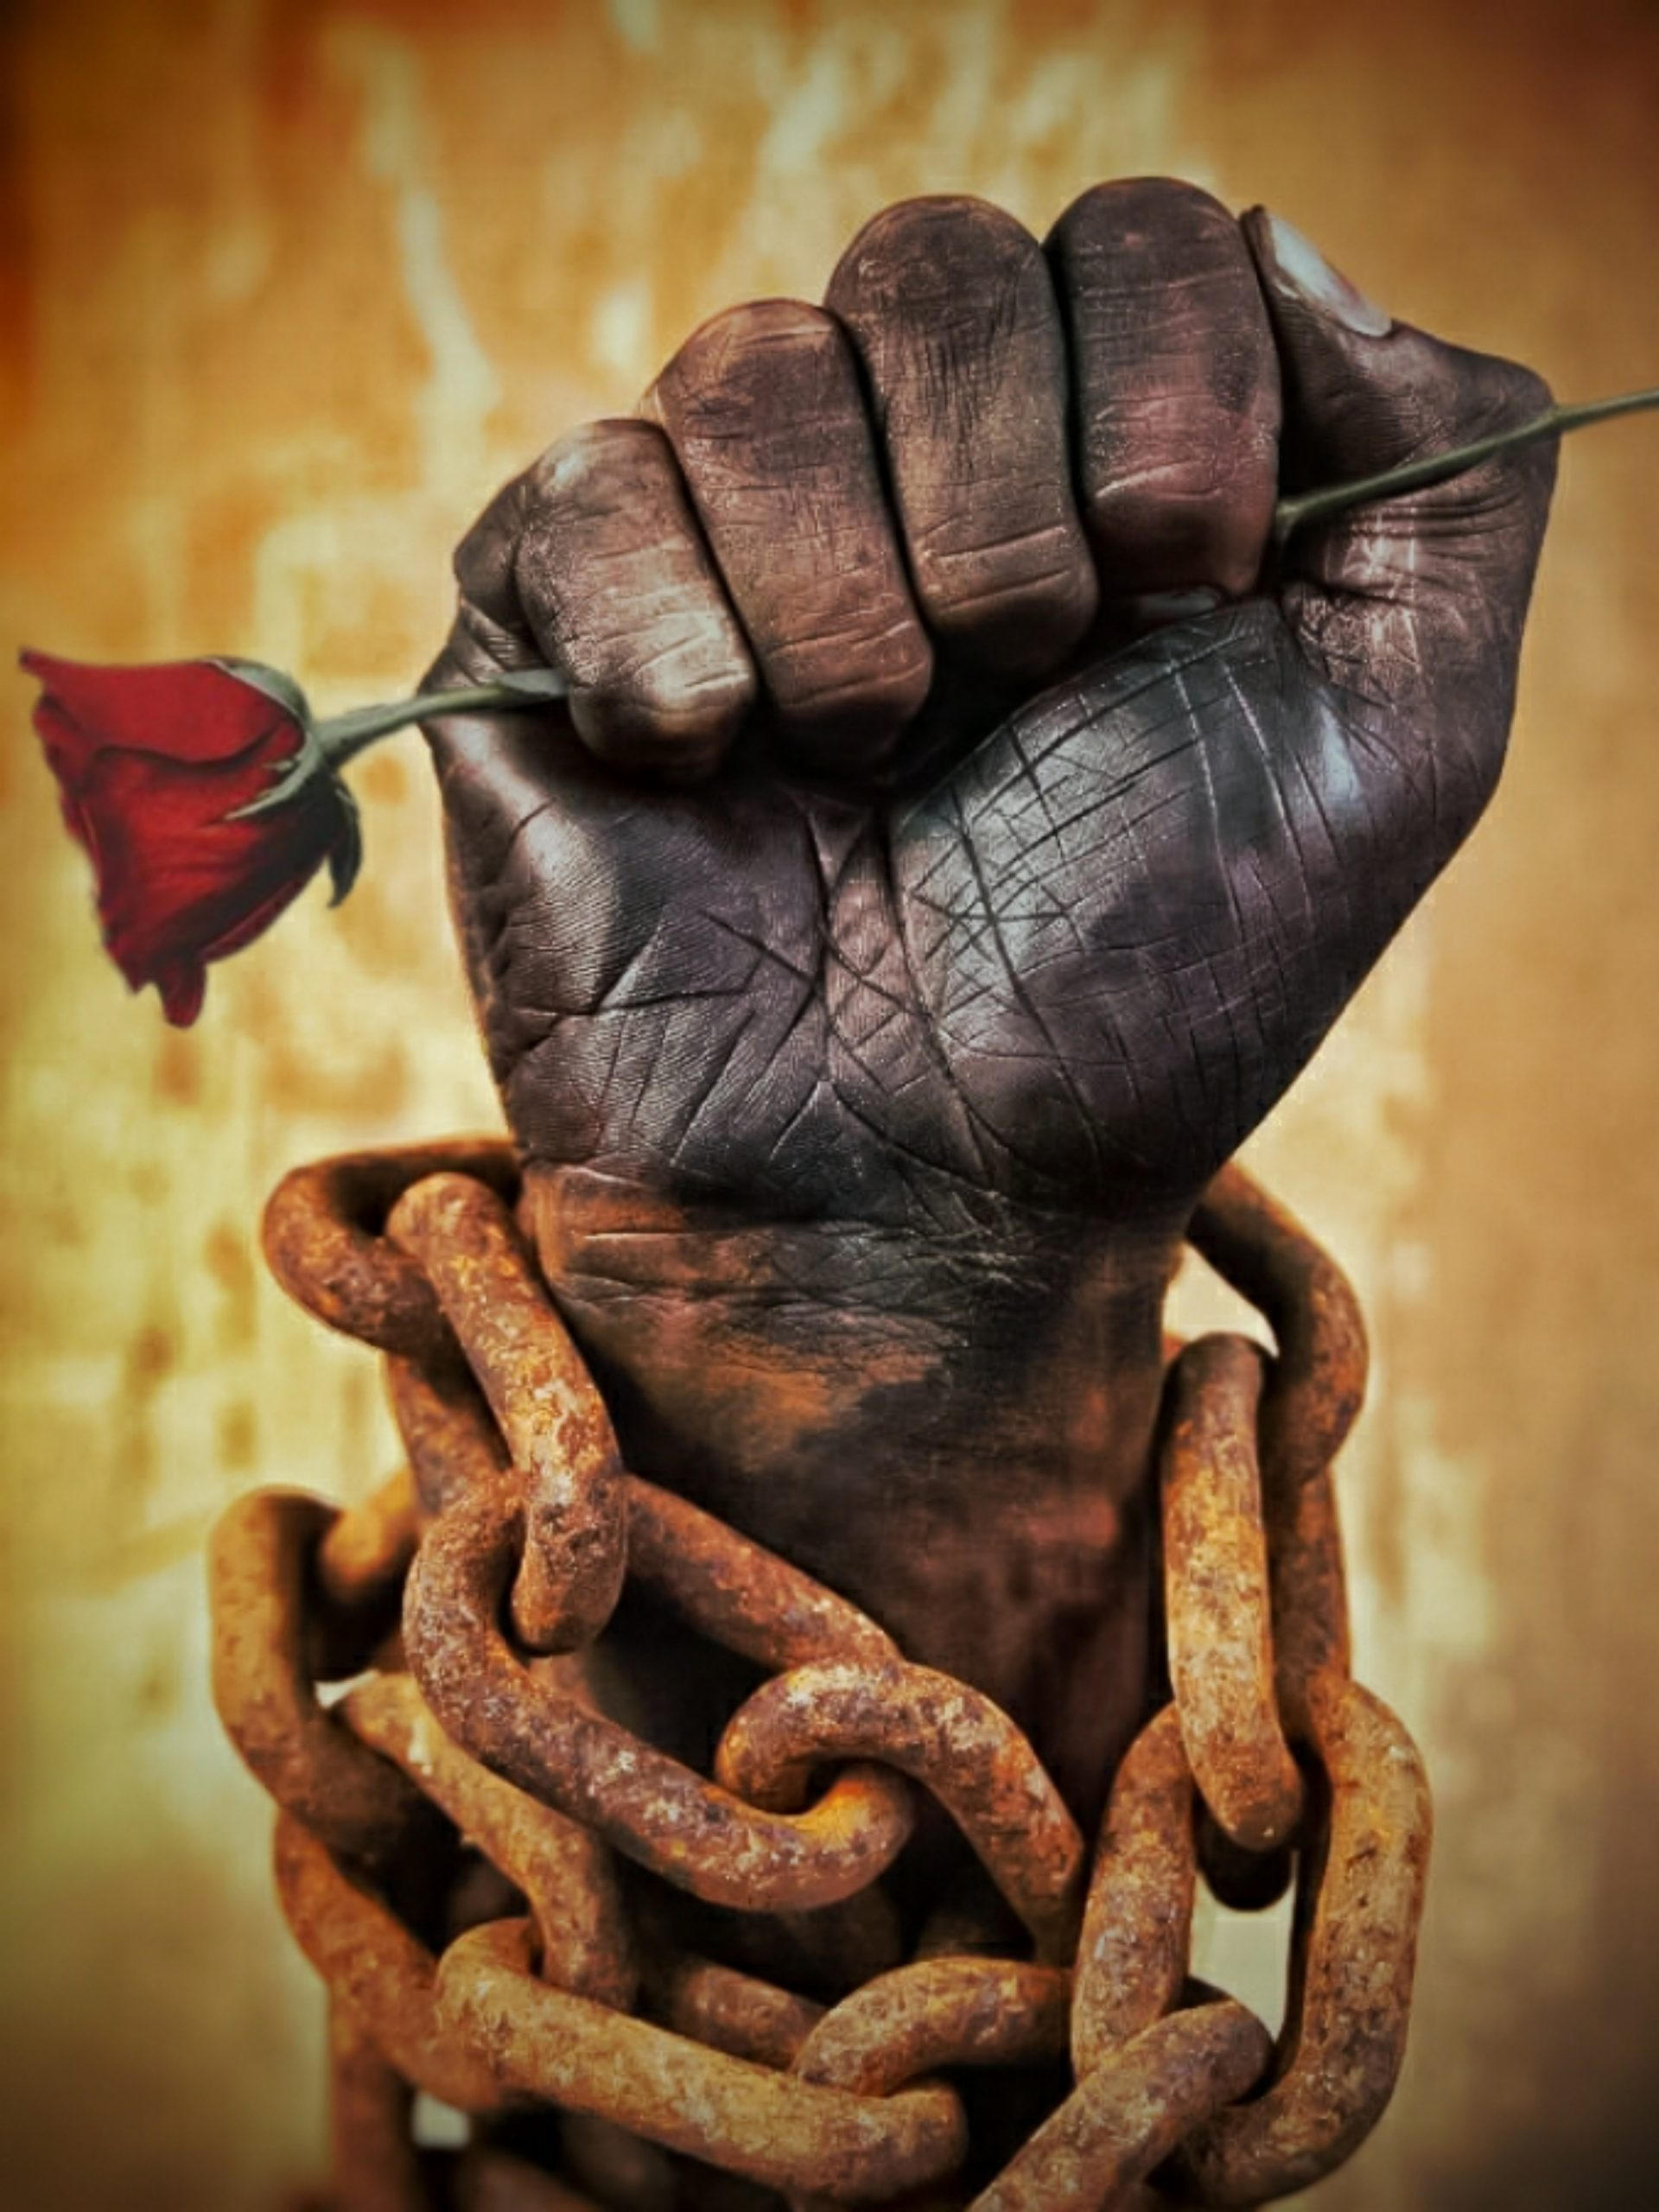 Chained hand with a rose